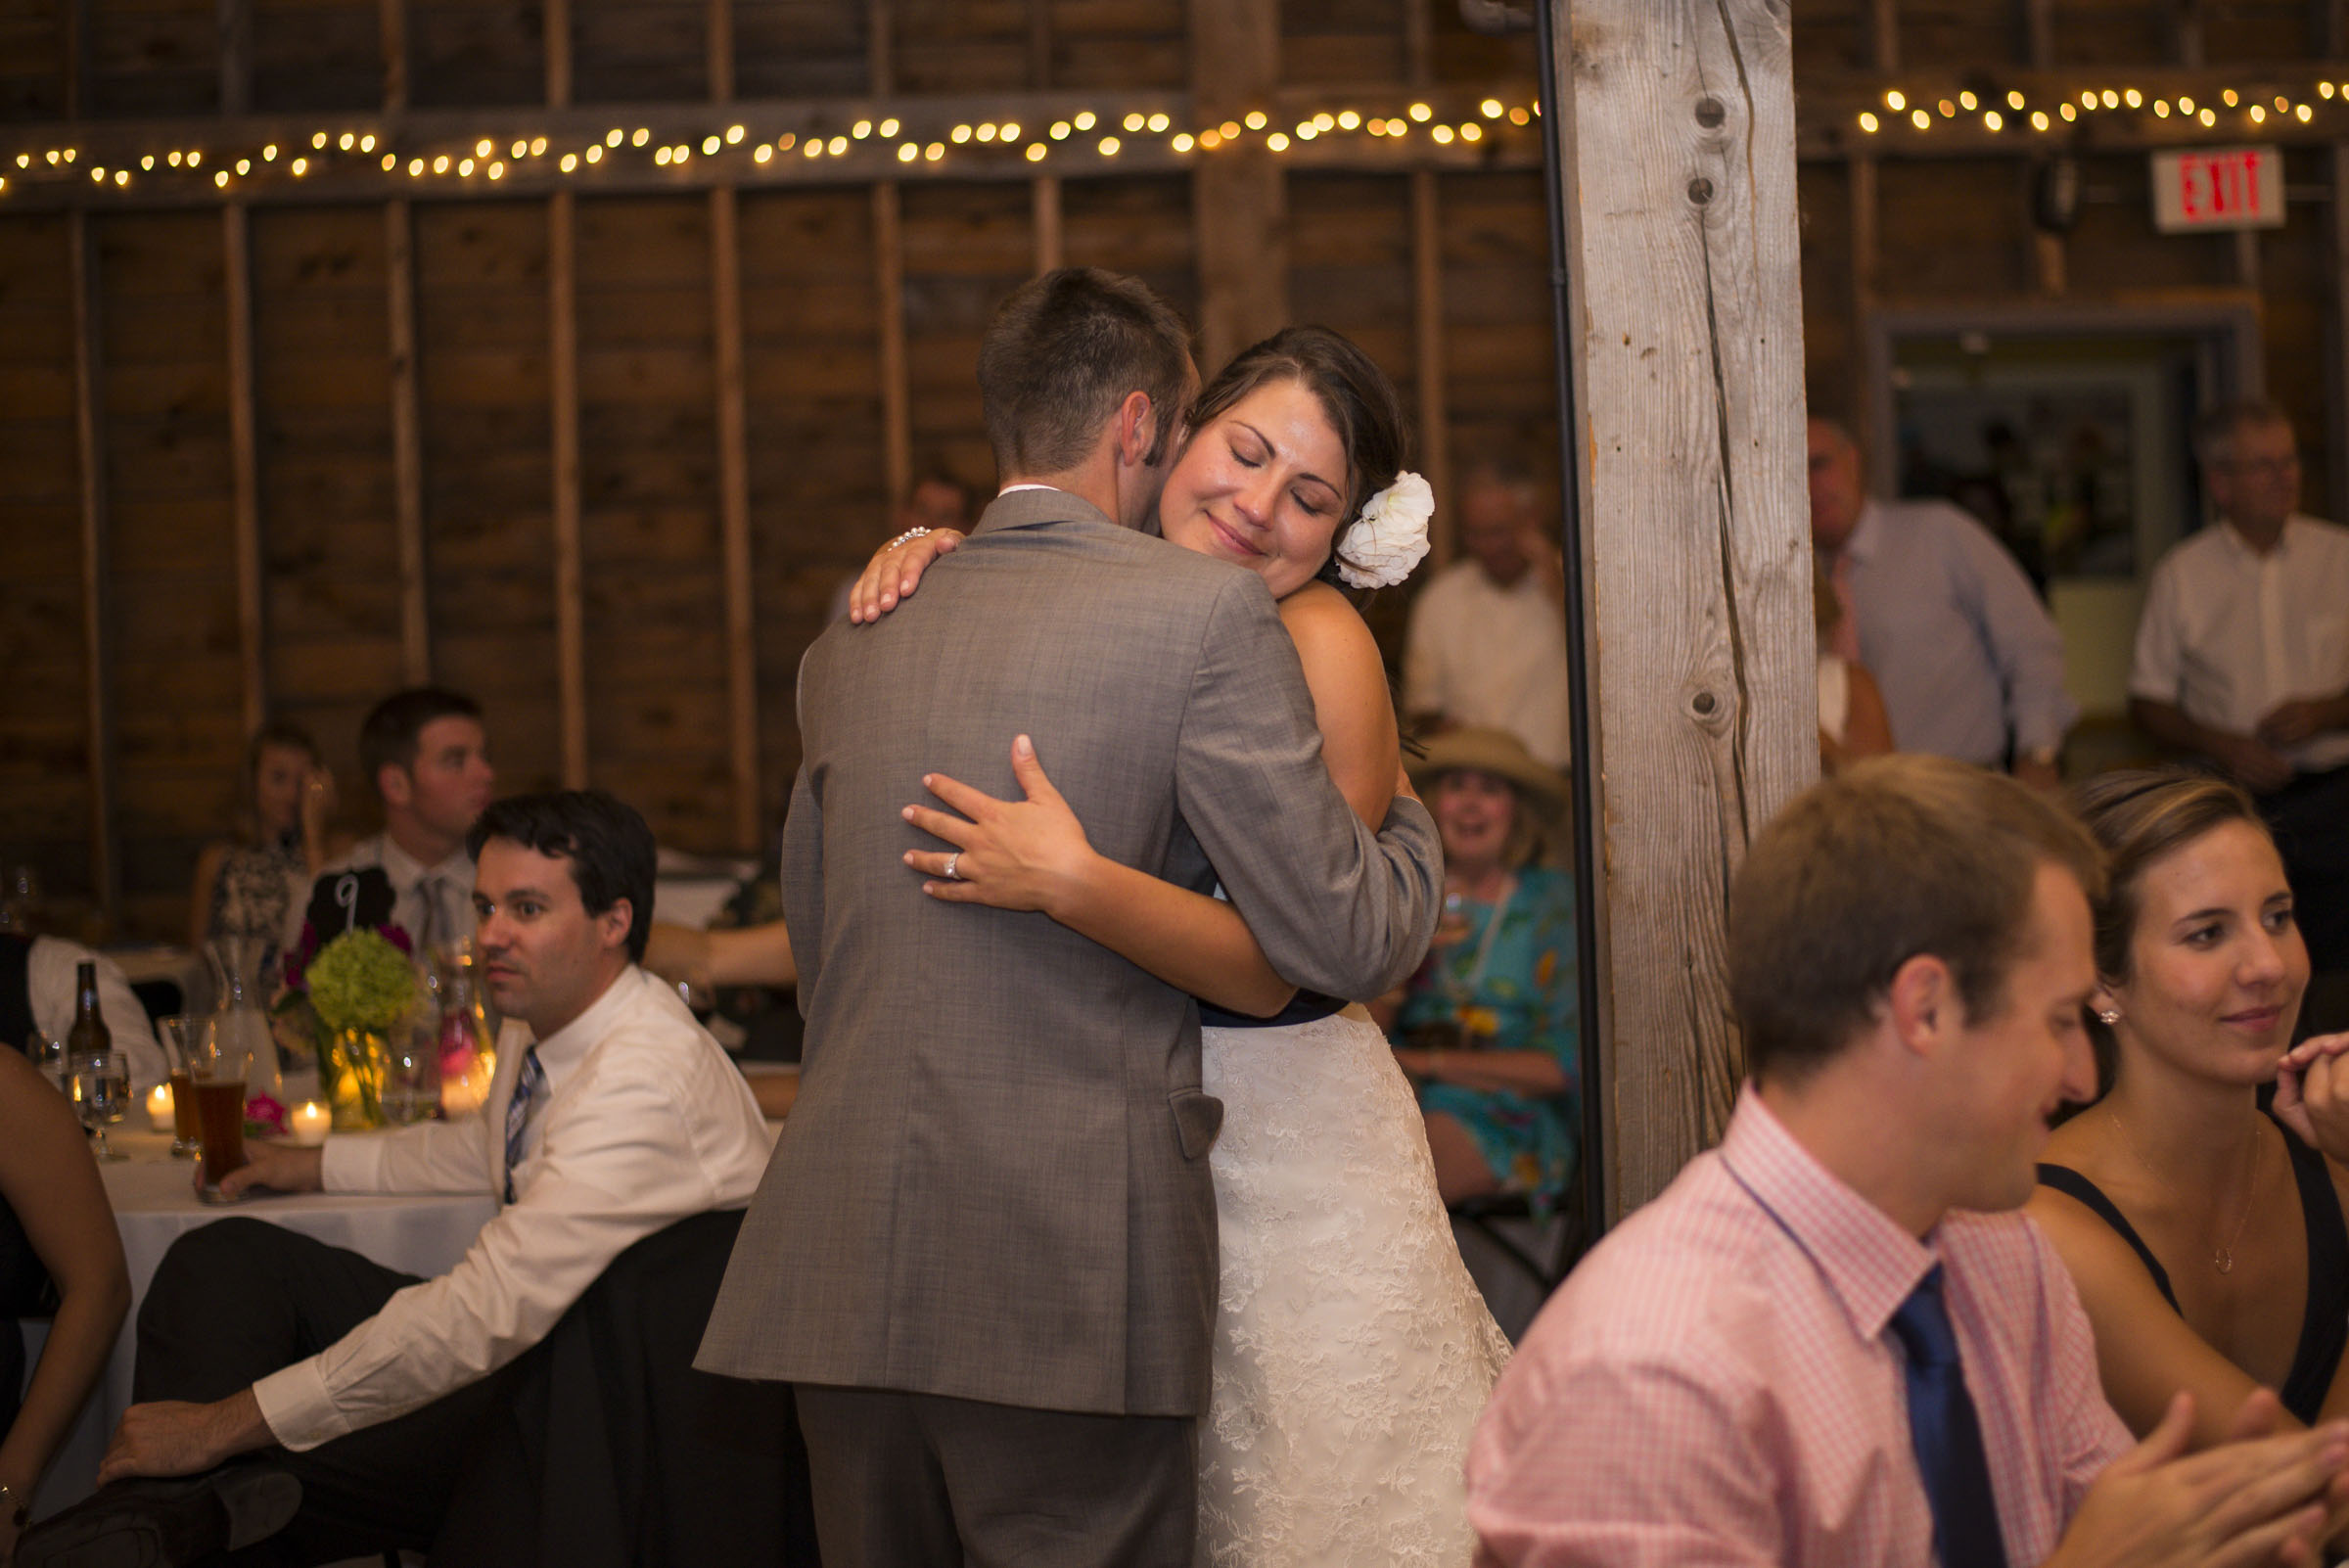 08232014-Chris&VanessaWedding-JuliaLuckettPhotography-471